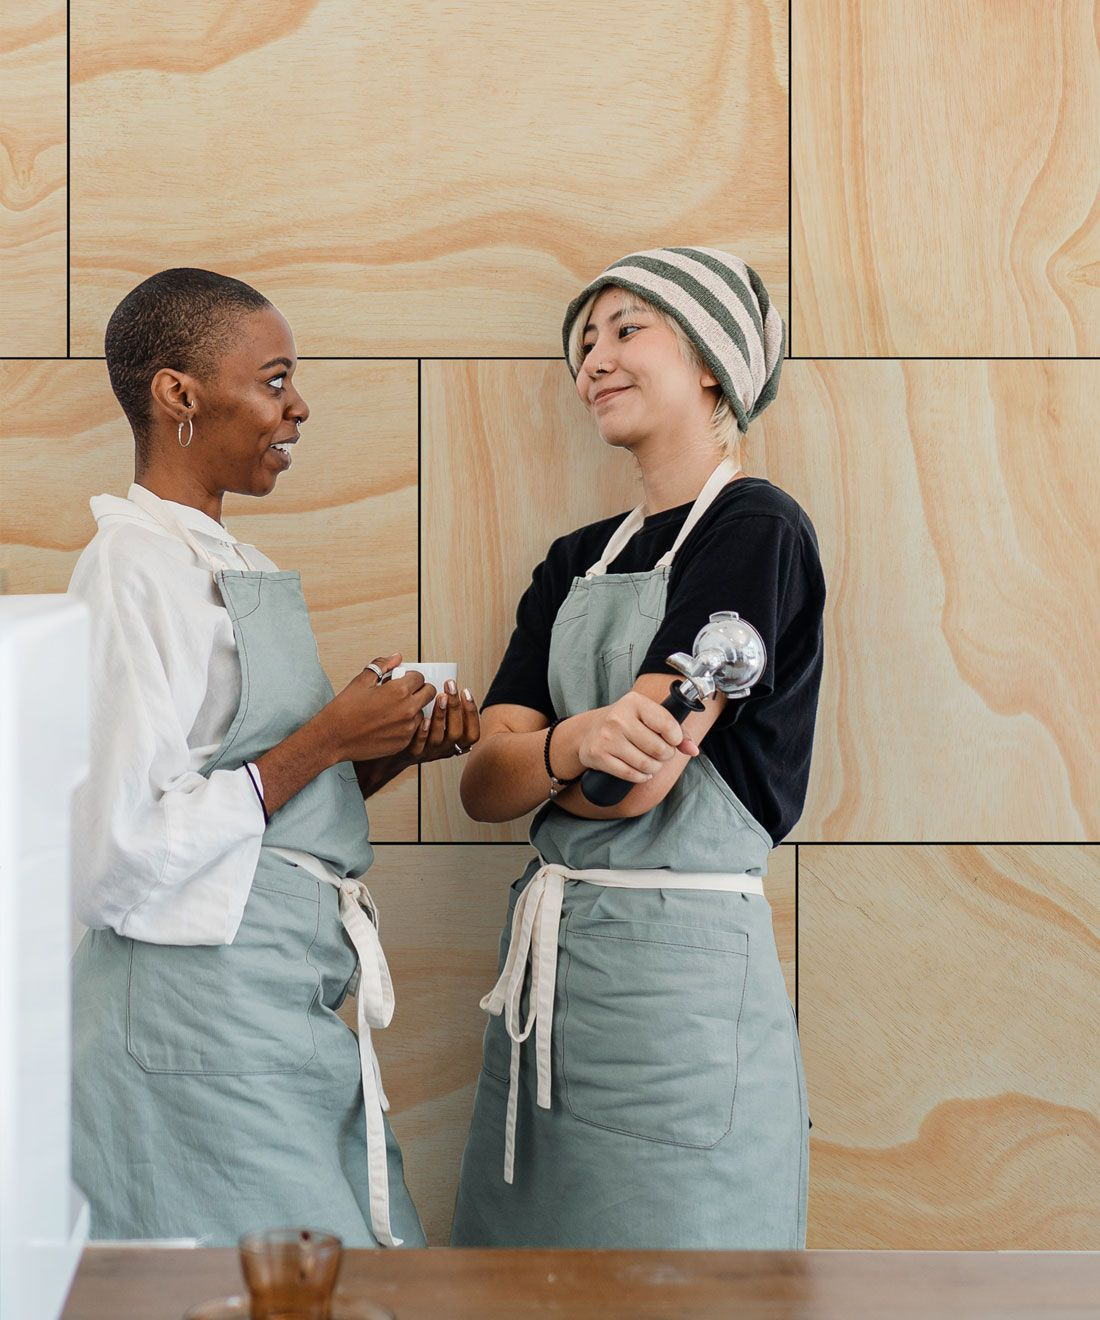 Ply Wood Wallpaper • Light Brown Wallpaper •Wood Grain Wallpaper with two co-workers leaning against the wall conversing